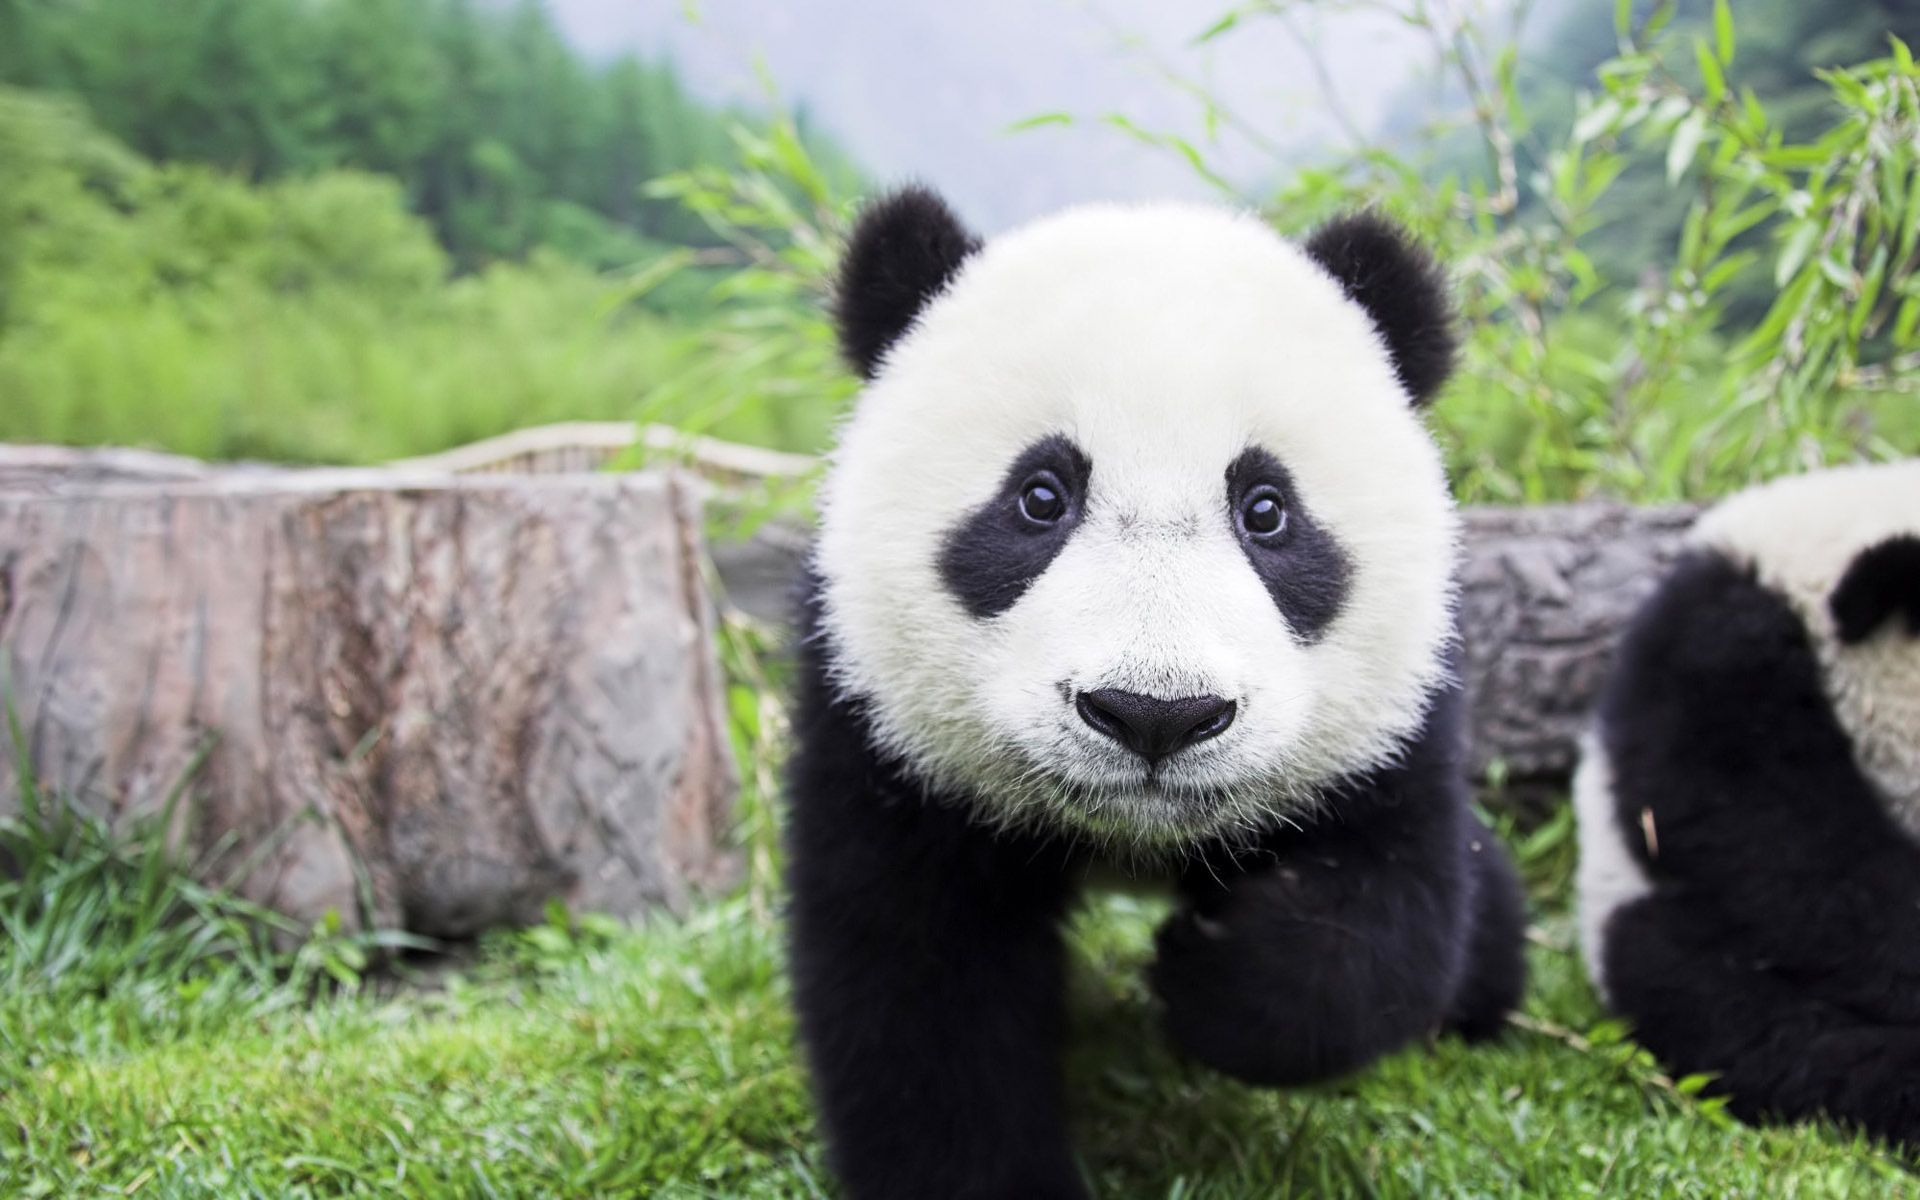 Cute Baby Panda Wallpaper Cute Baby Panda Wallpaper Wallpaper Cute Baby Panda Wallpapers Hd Love Cute Baby For Desktop Pink For 1920x1200